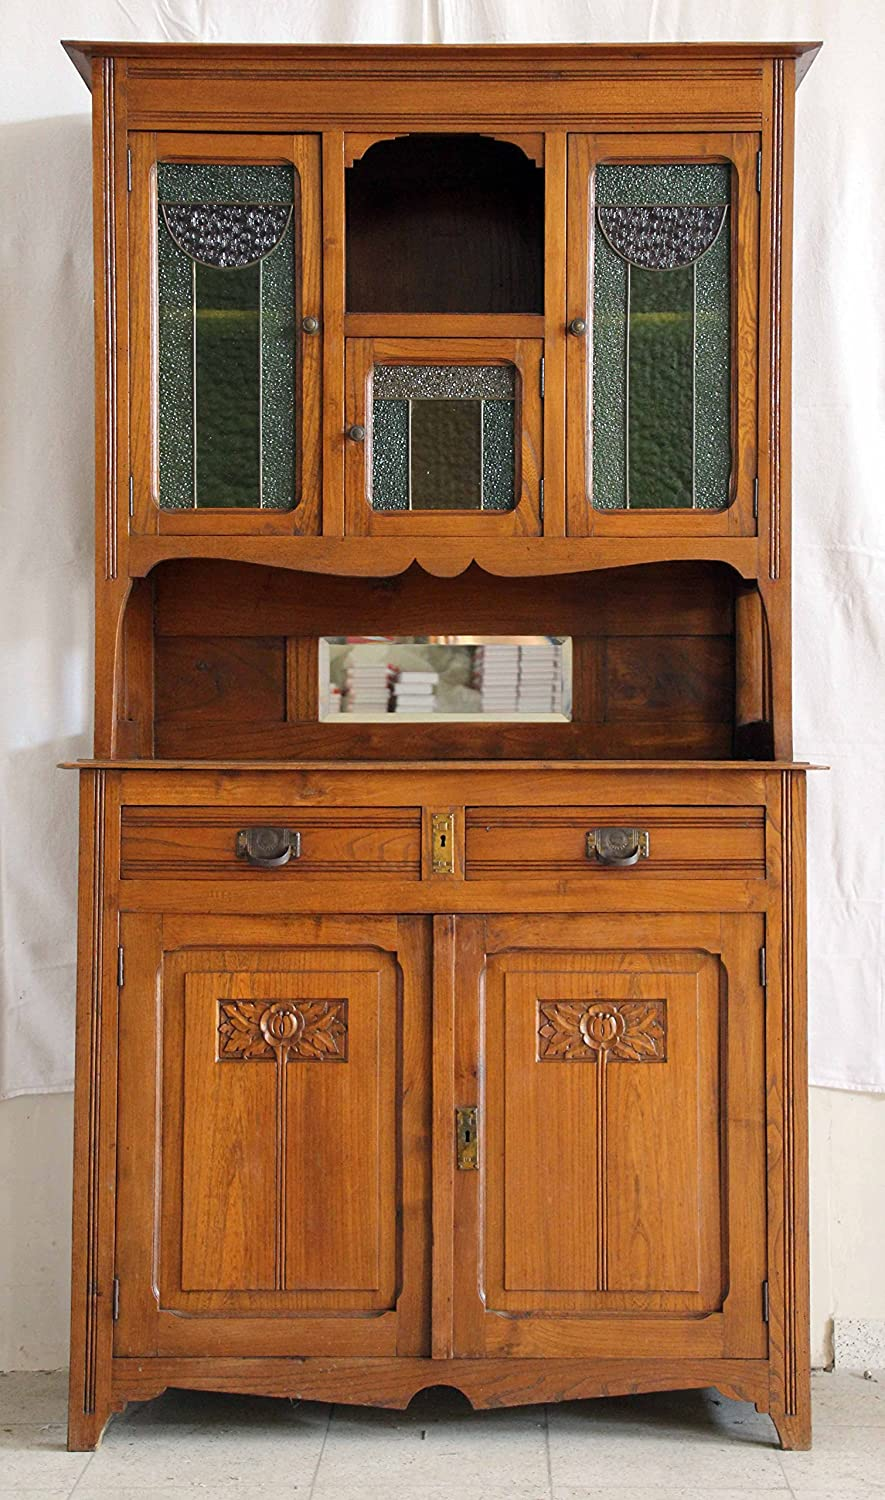 kafka antik wundersch nes seltenes antikes florales jugendstil buffet bleiverglasung 1890 jetzt. Black Bedroom Furniture Sets. Home Design Ideas